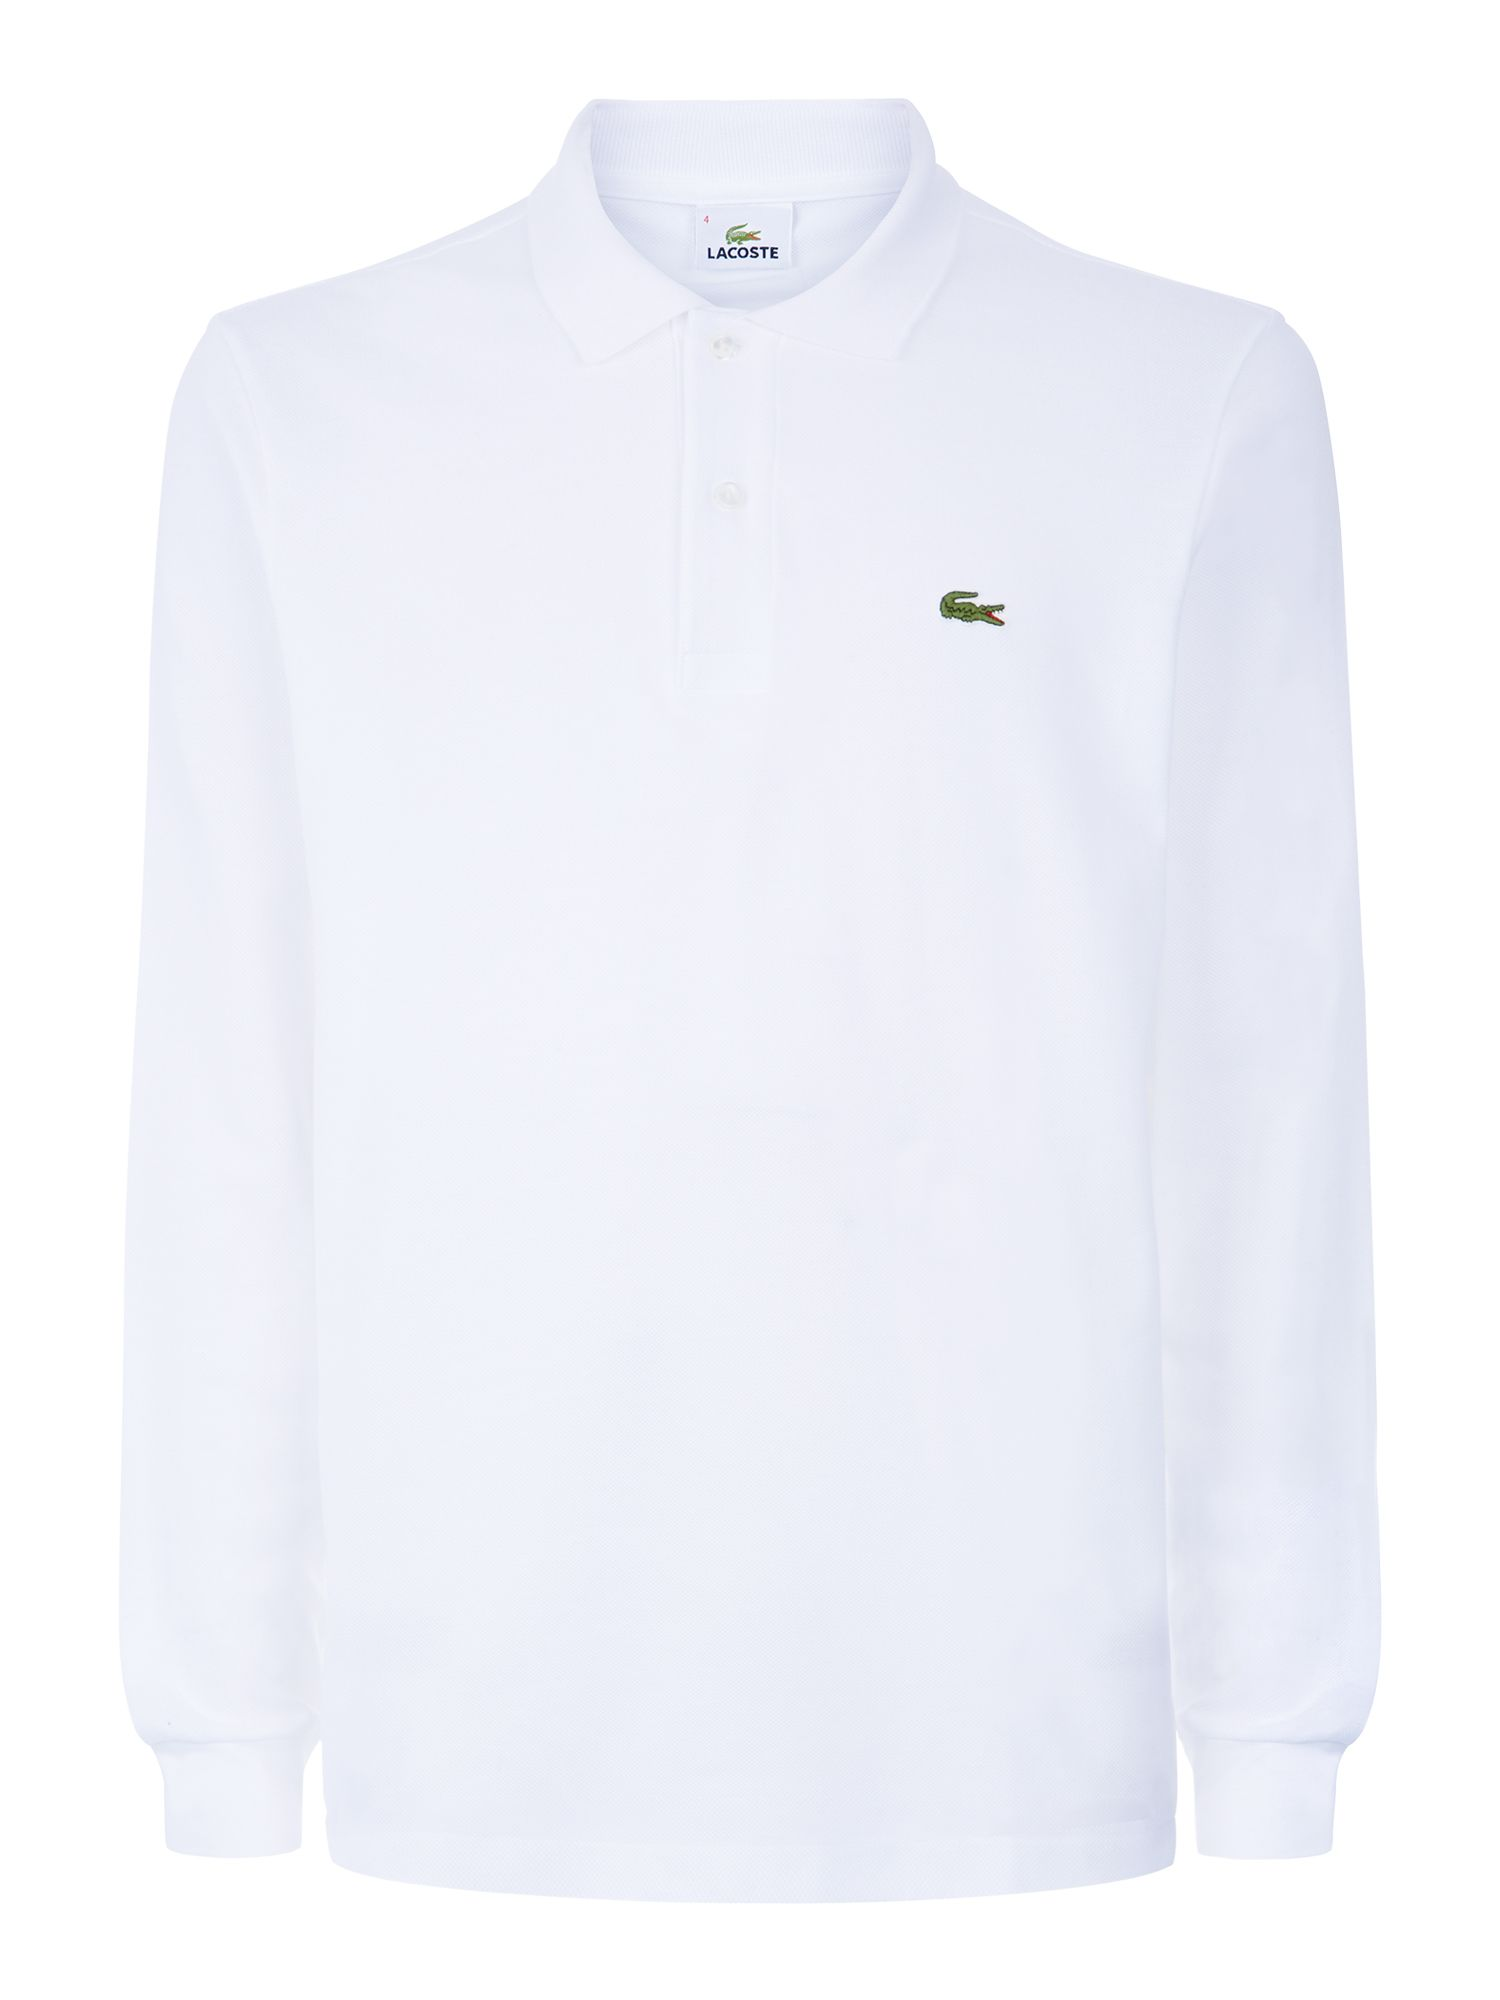 Men's Lacoste Lacoste Long Sleeve L.12.12 Polo, White